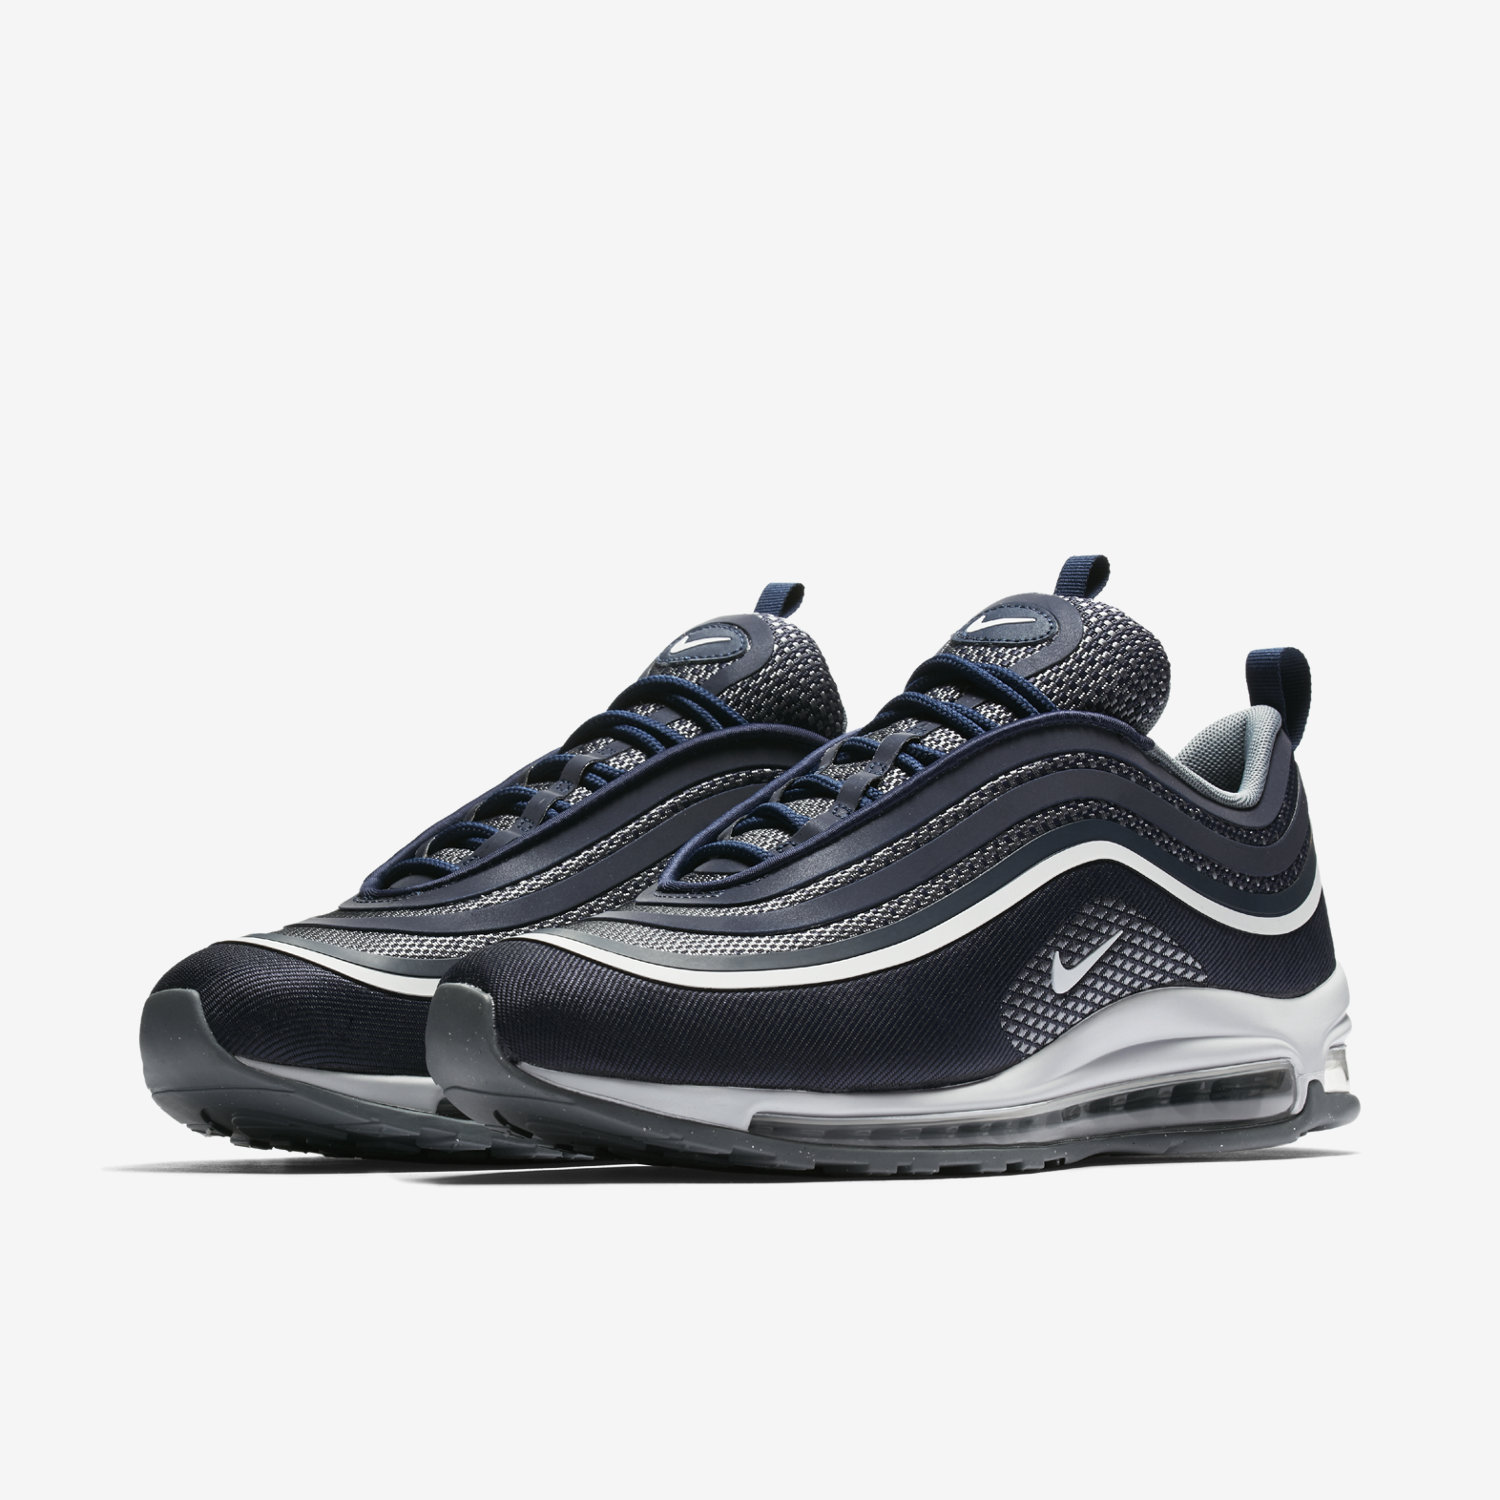 Cheap Nike Air Max 97 Black White 921826 003